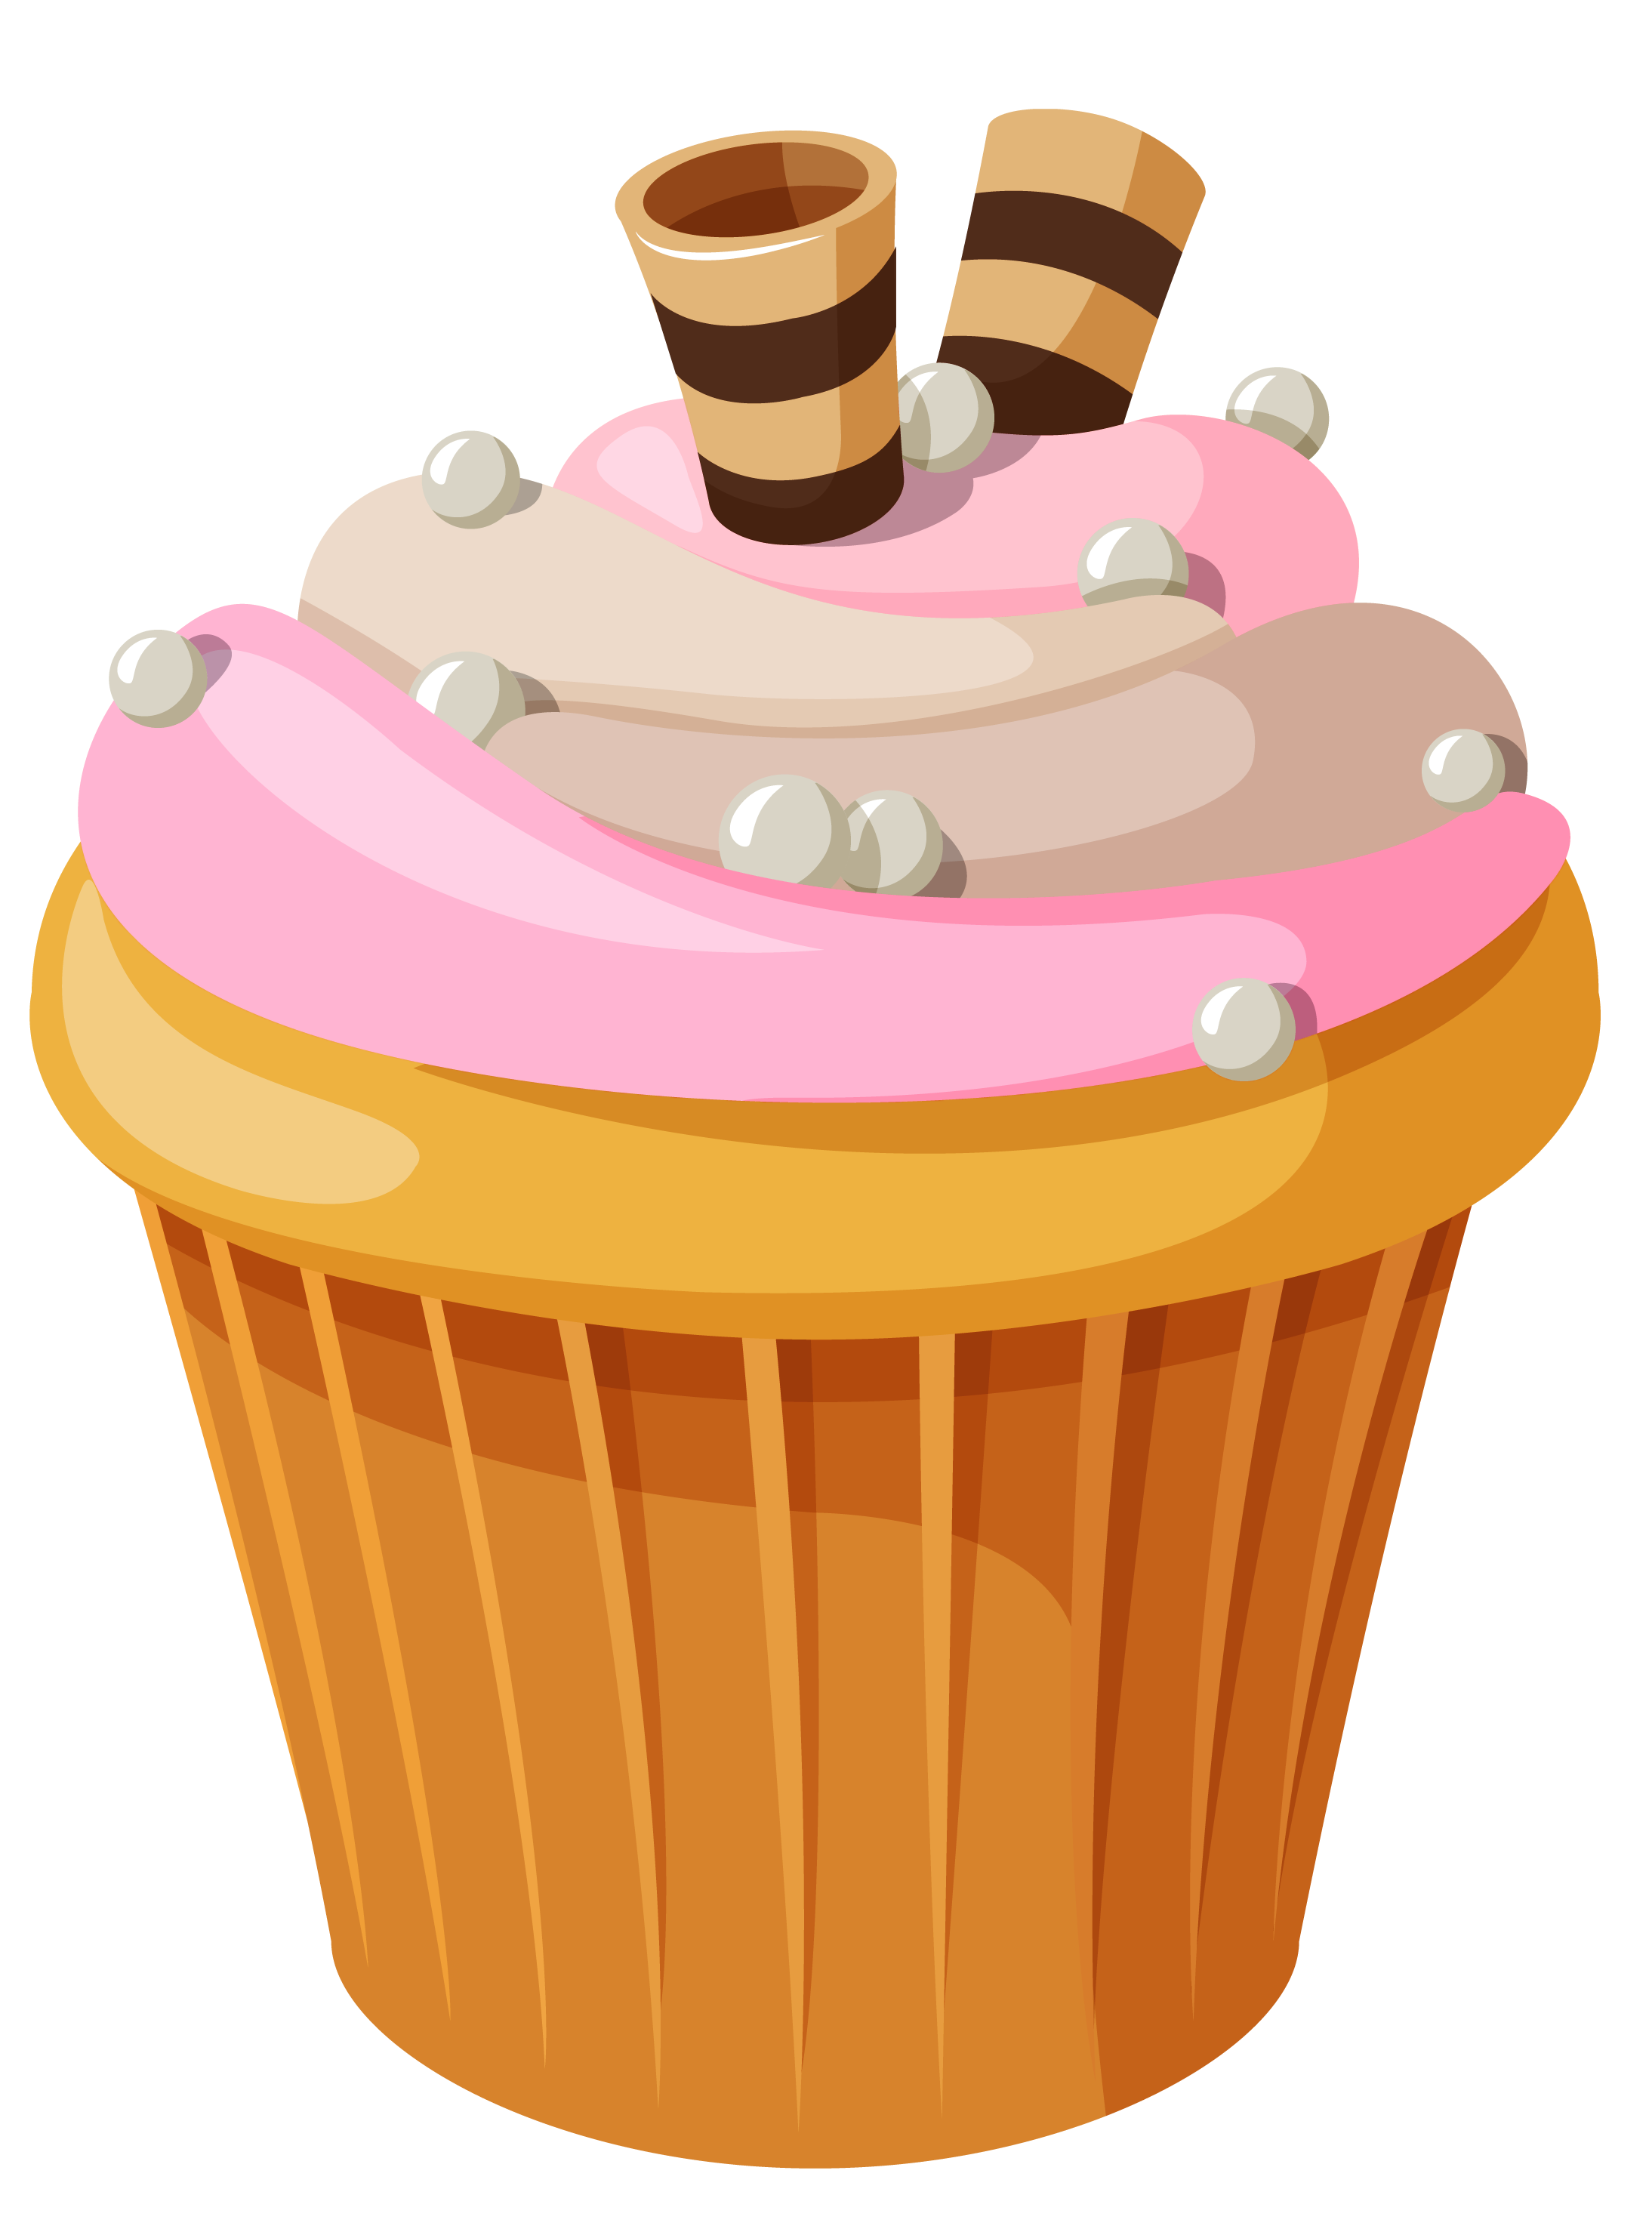 desserts clipart baked sweet